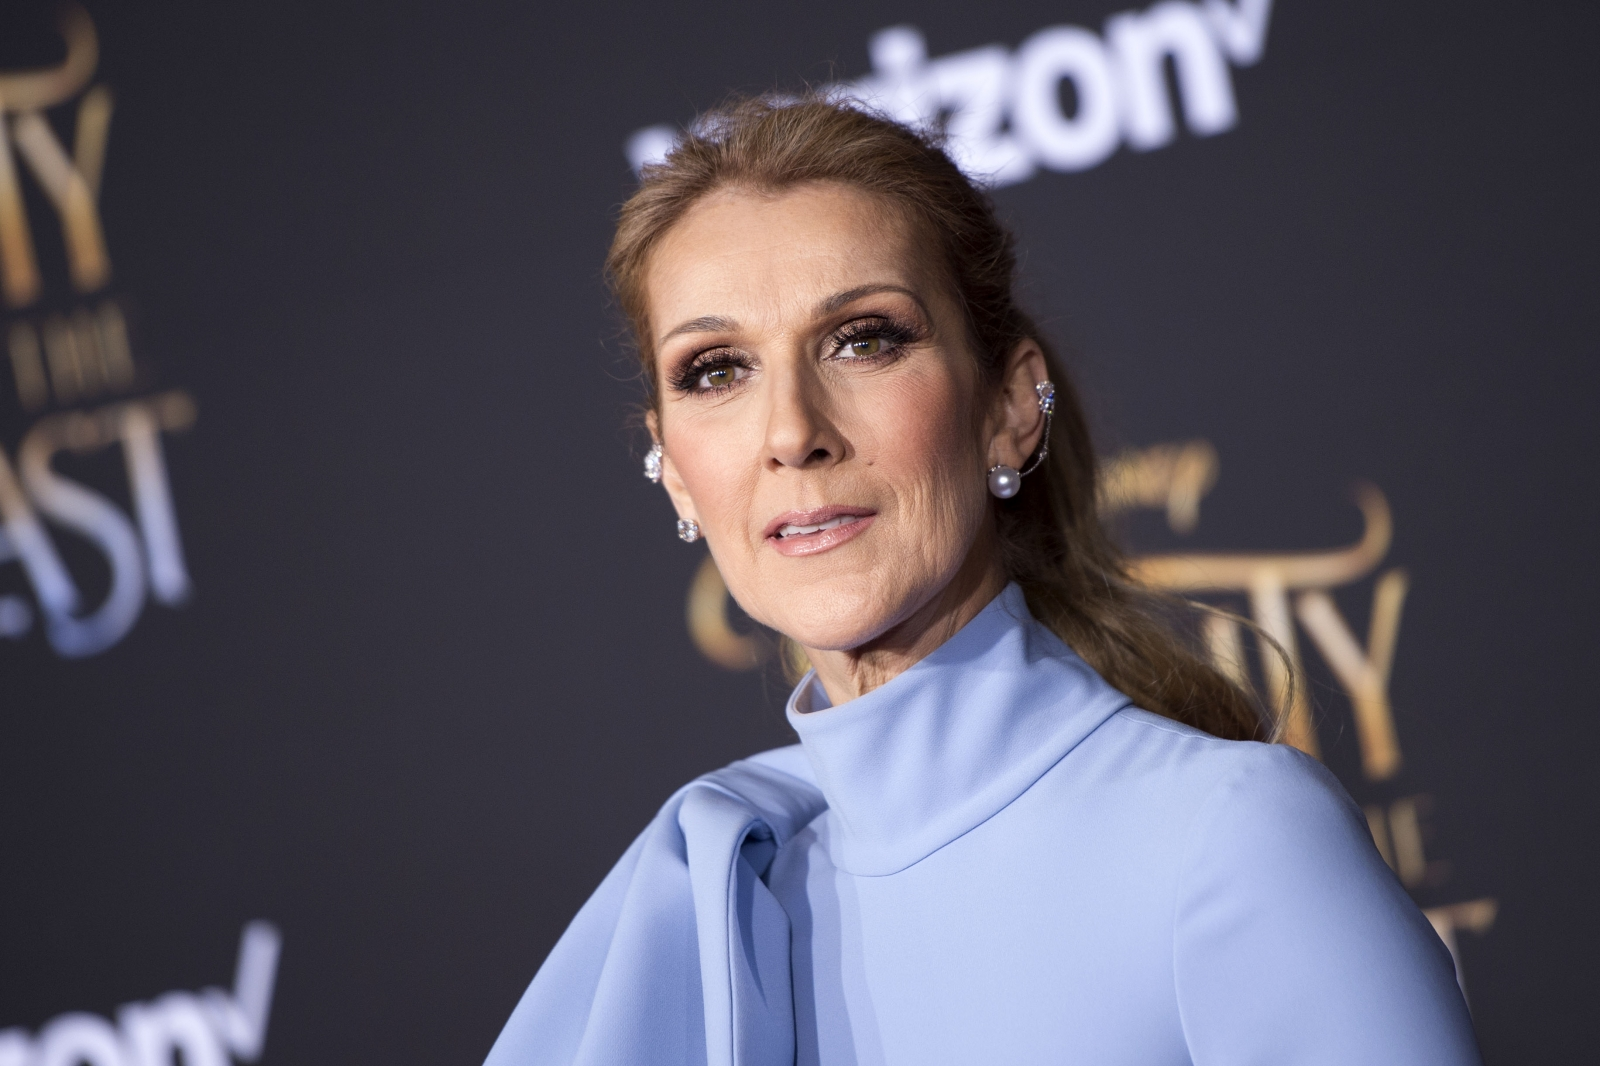 Celine Dion Isn't Looking For Love After Passing Of Husband Rene Angelil